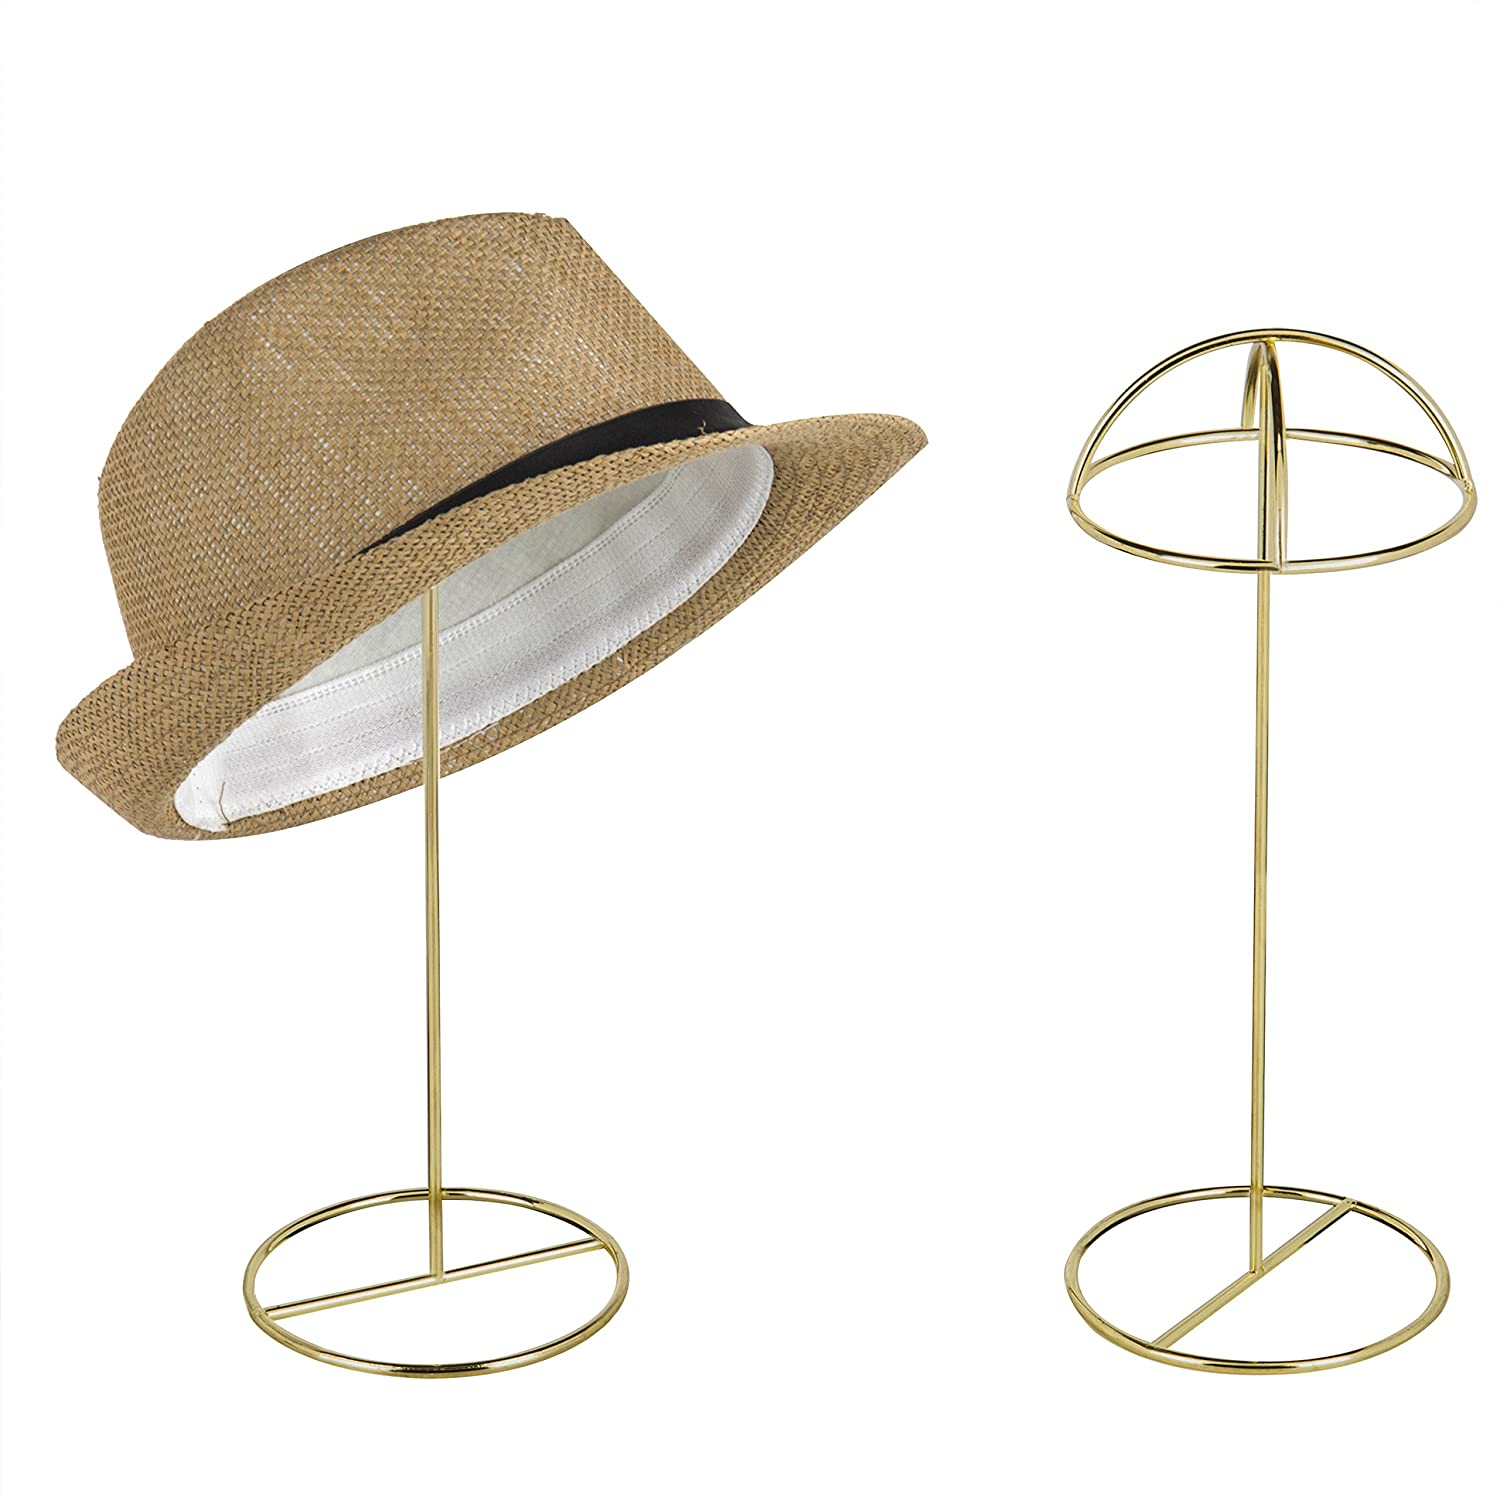 MyGift 14-Inch Brass-Tone Wire Tabletop Hat Stands, Set of 2